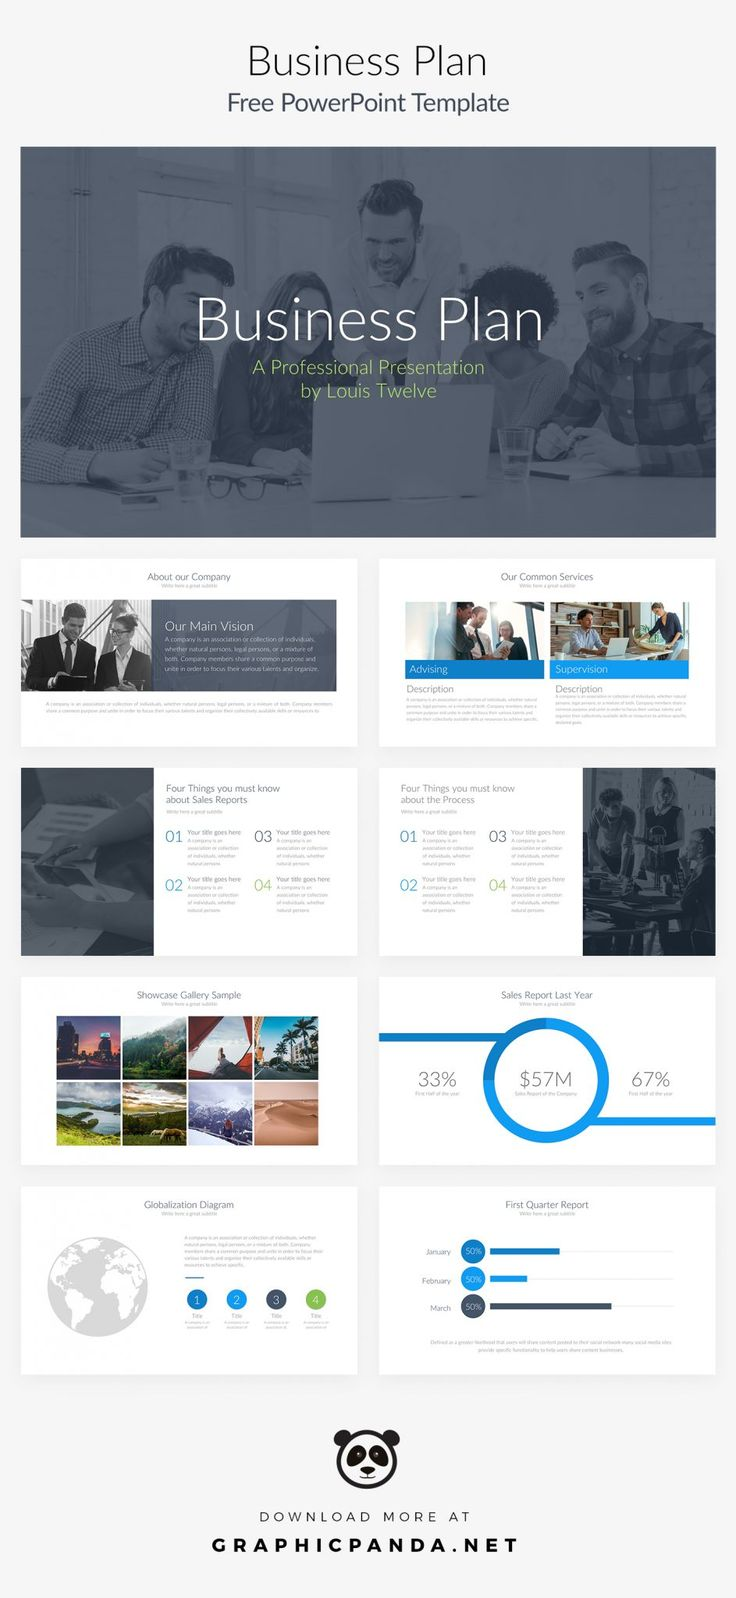 20 best free powerpoint templates images on pinterest | keynote, Powerpoint templates